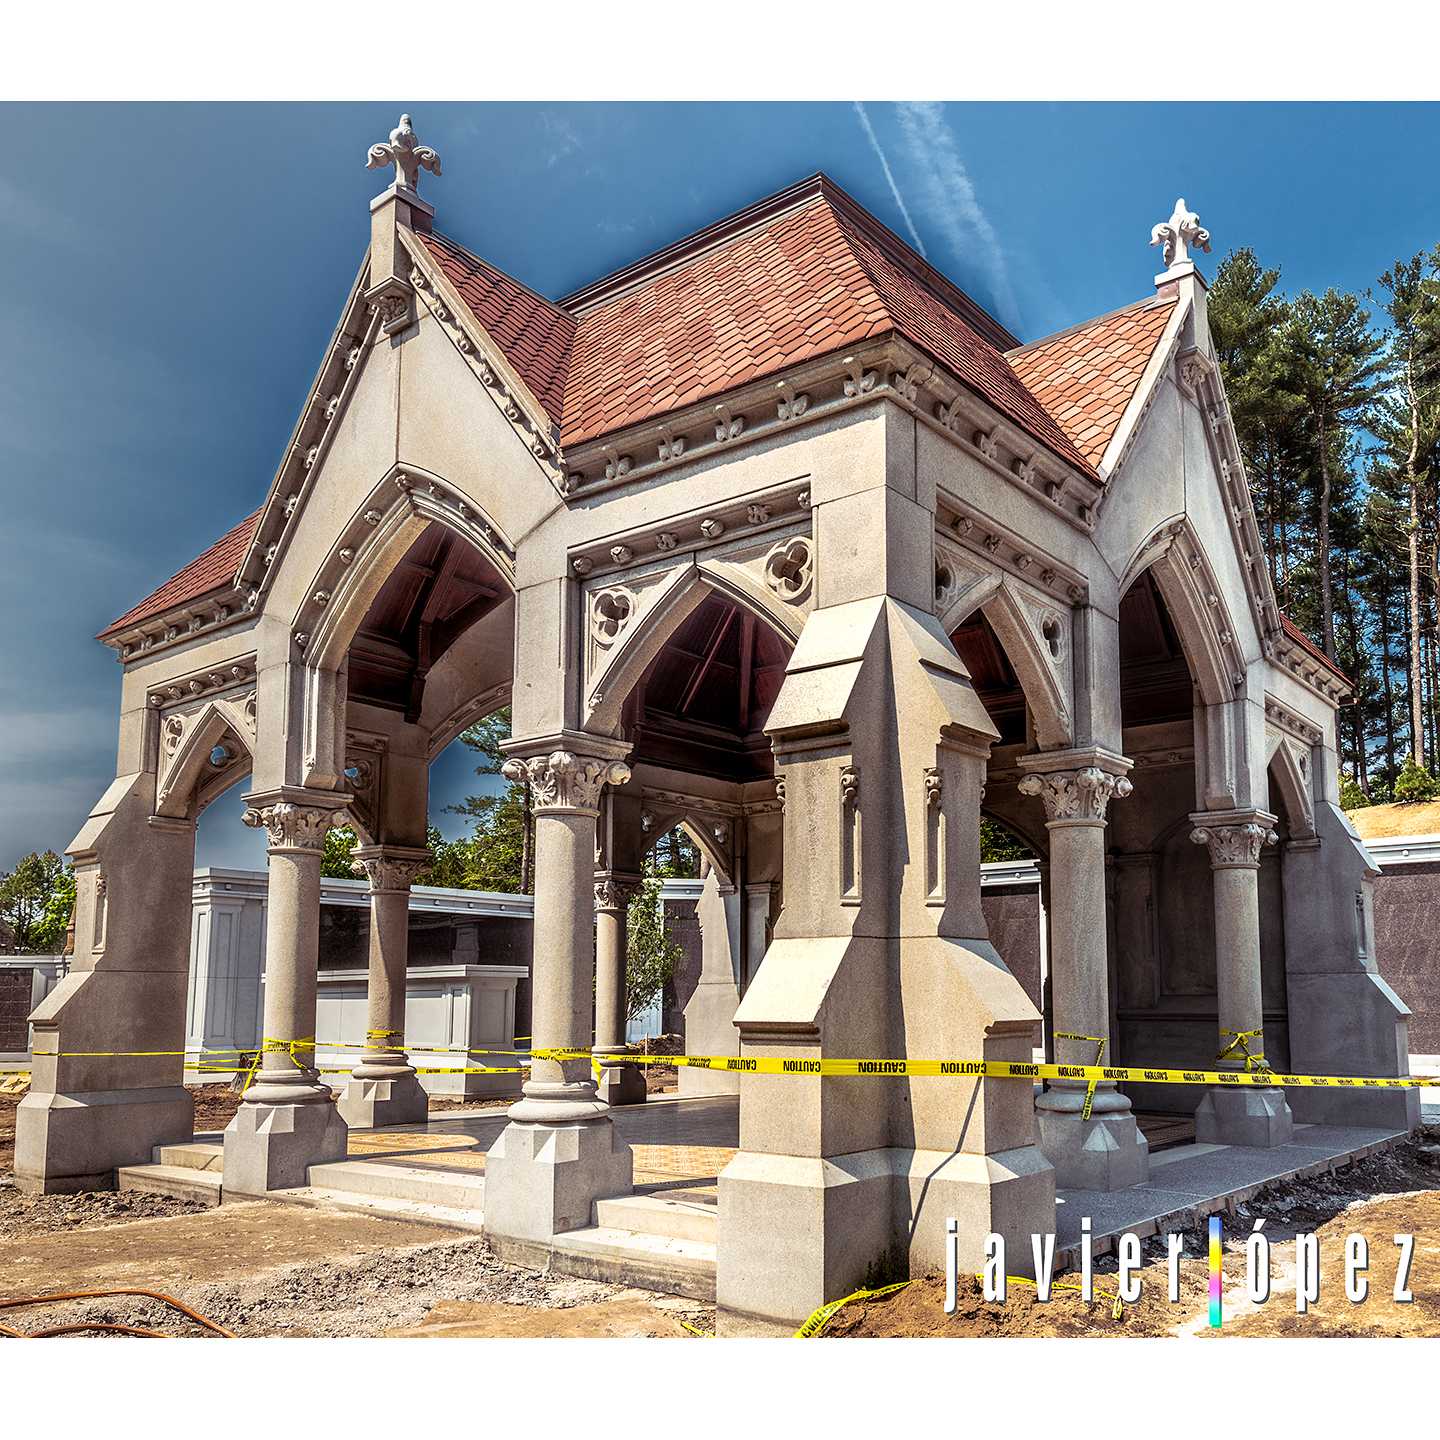 2019 Forest Hills Cementery Boston